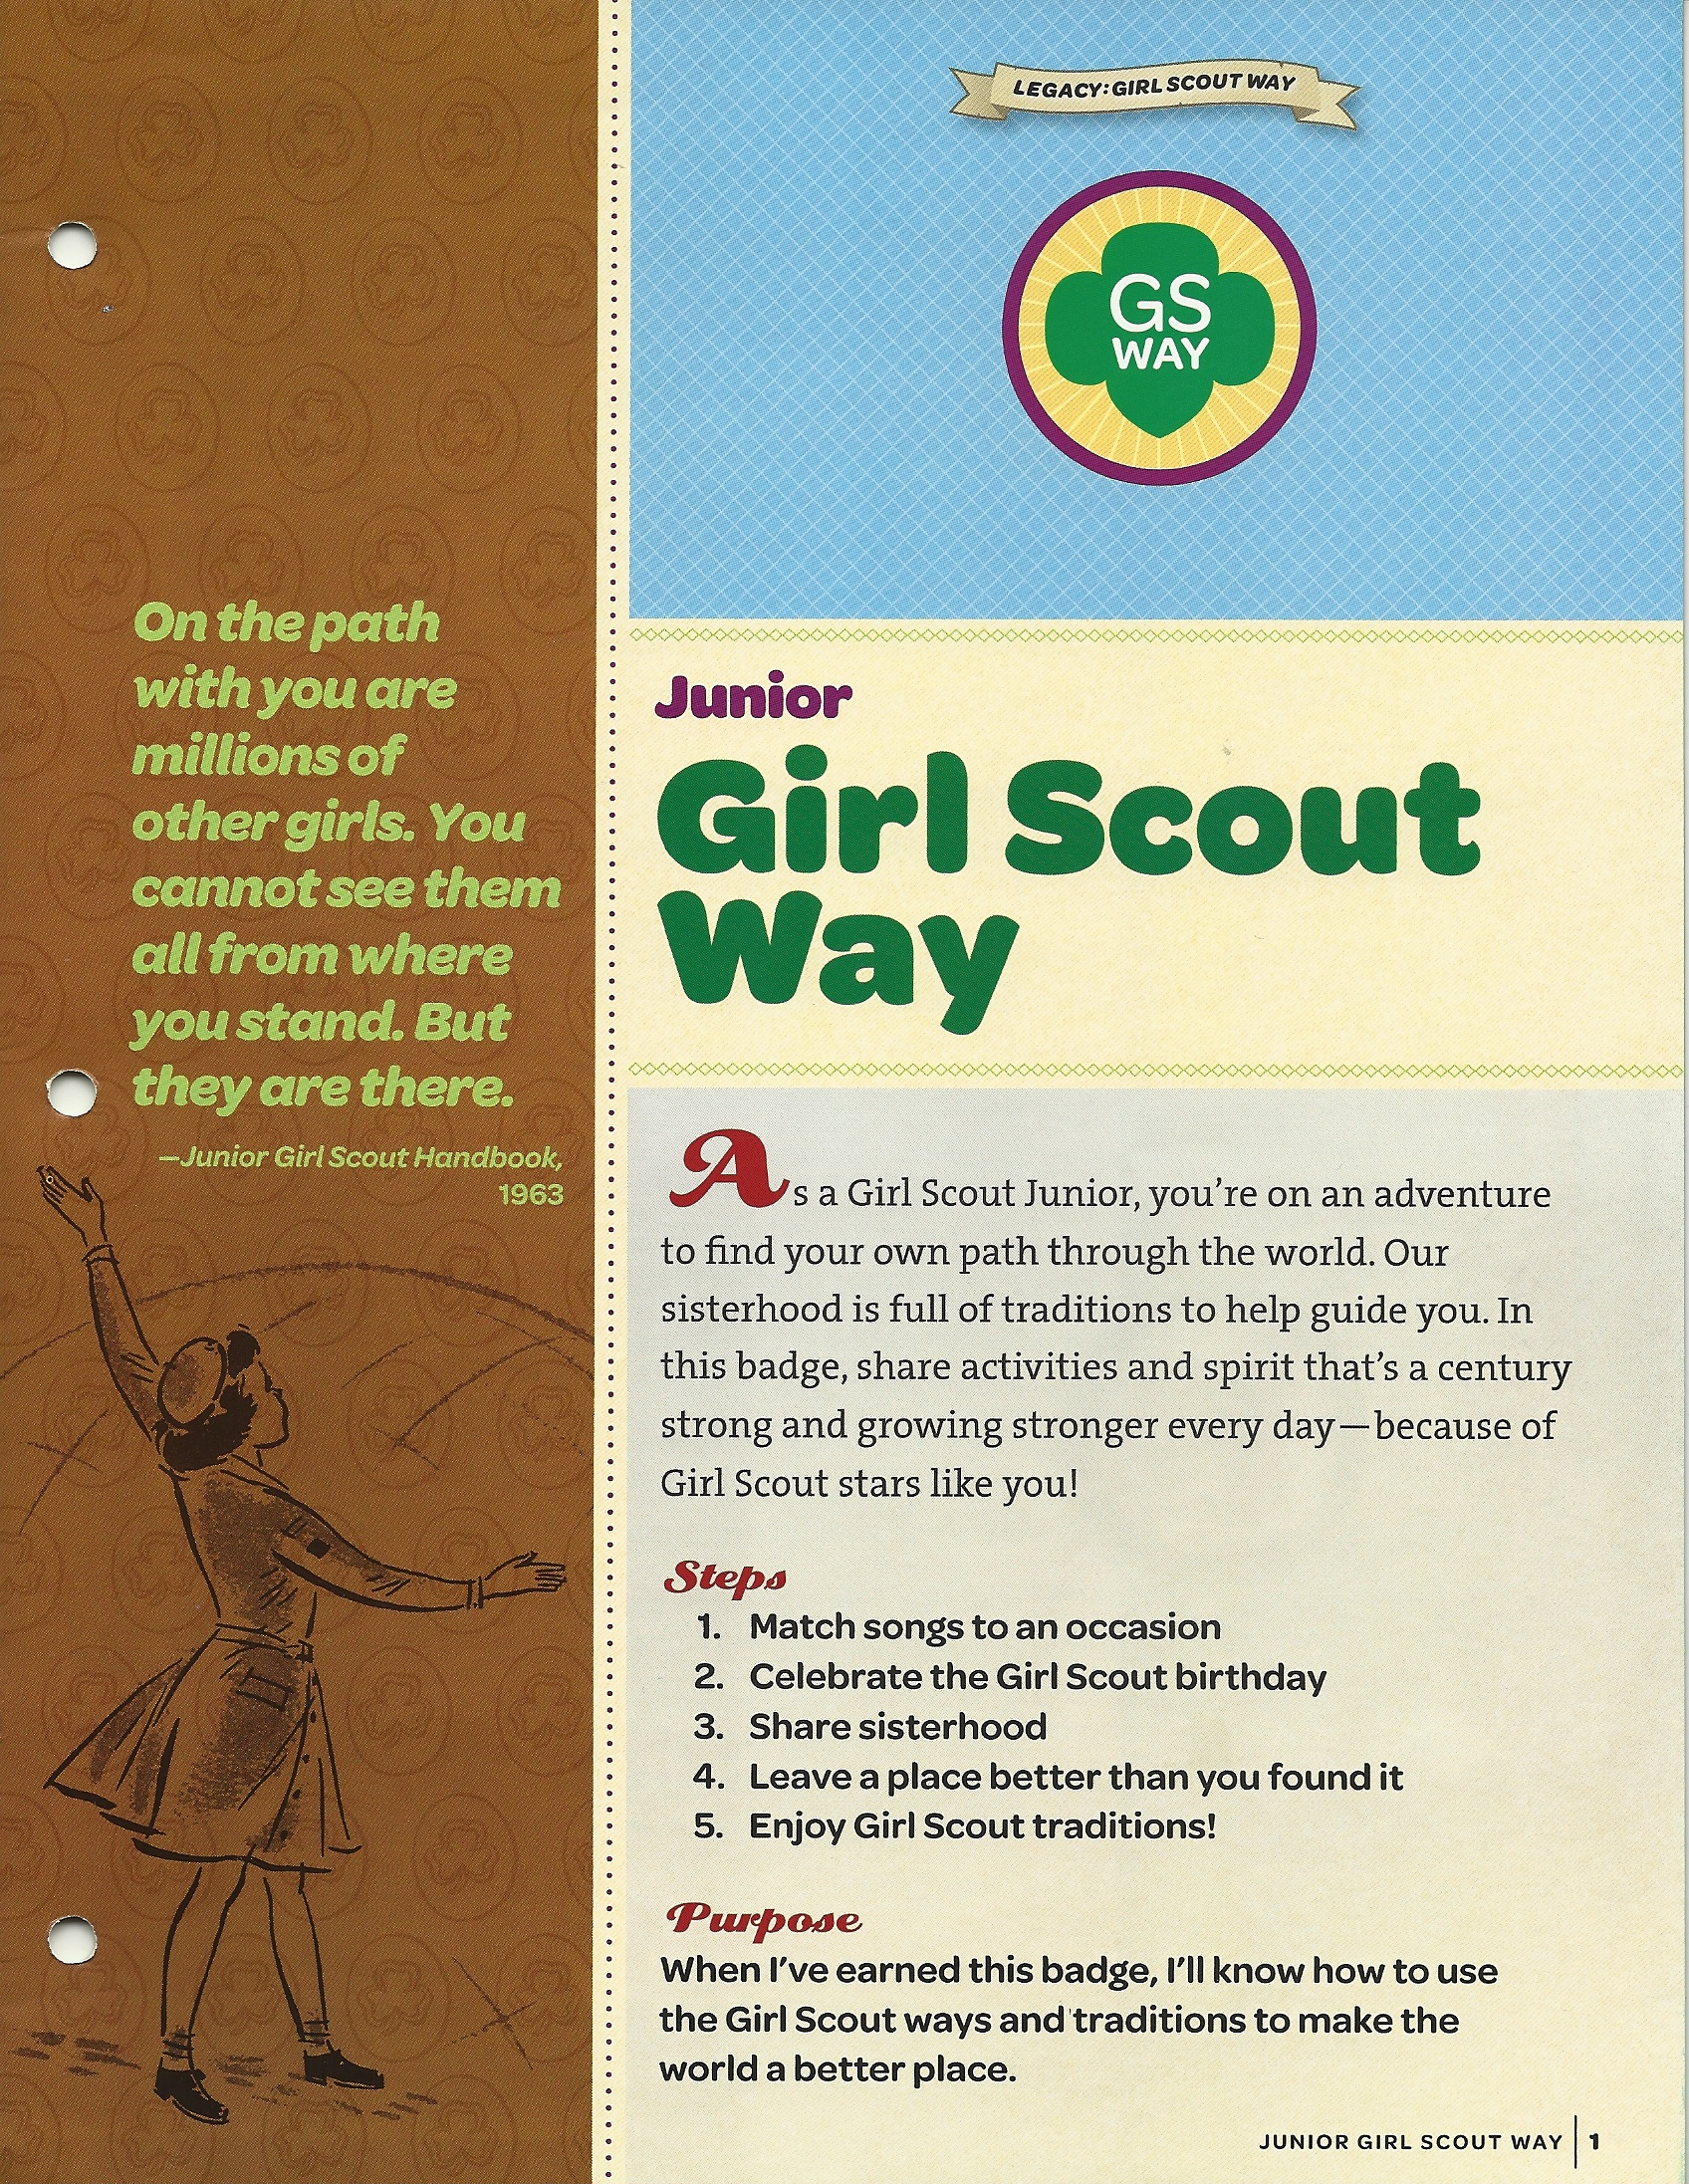 Girl Scout Way